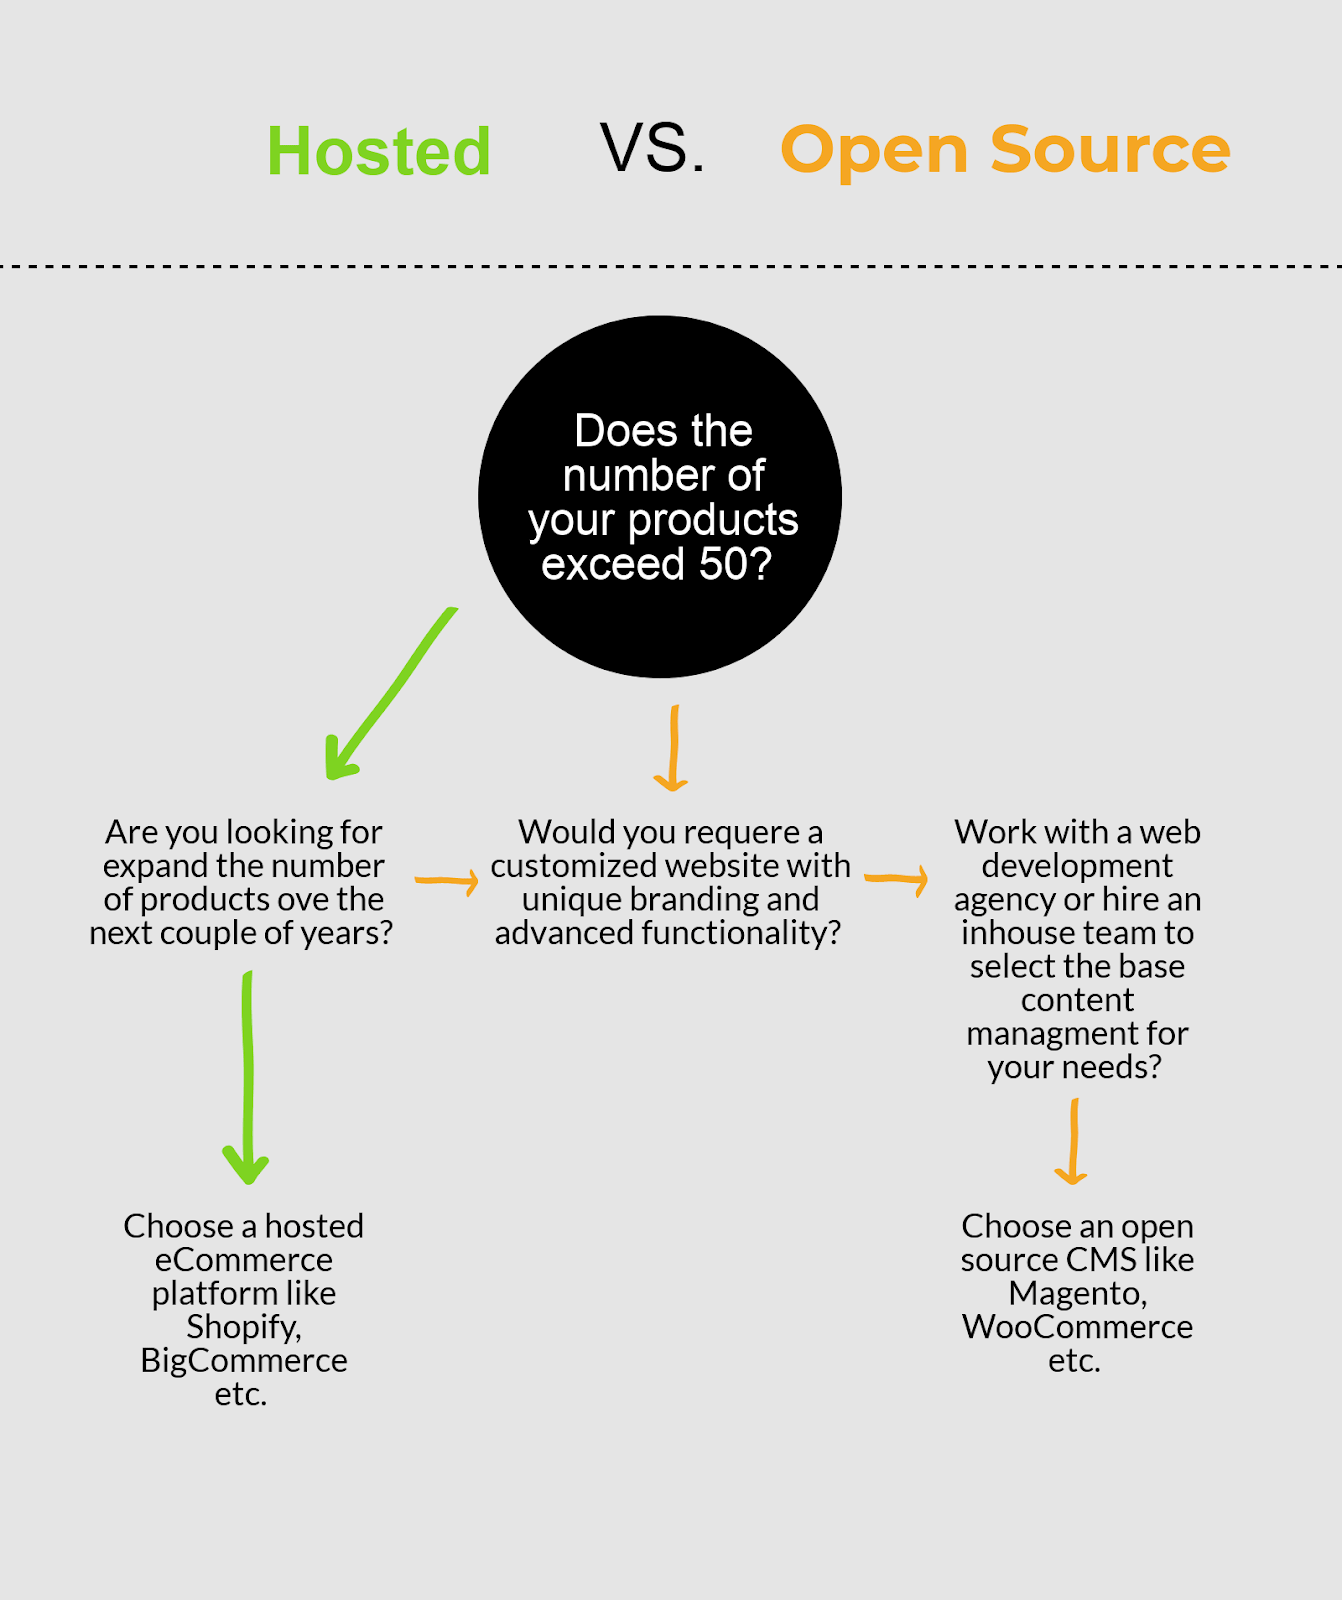 decide whether you need an open source eCommerce solution or another type of platform